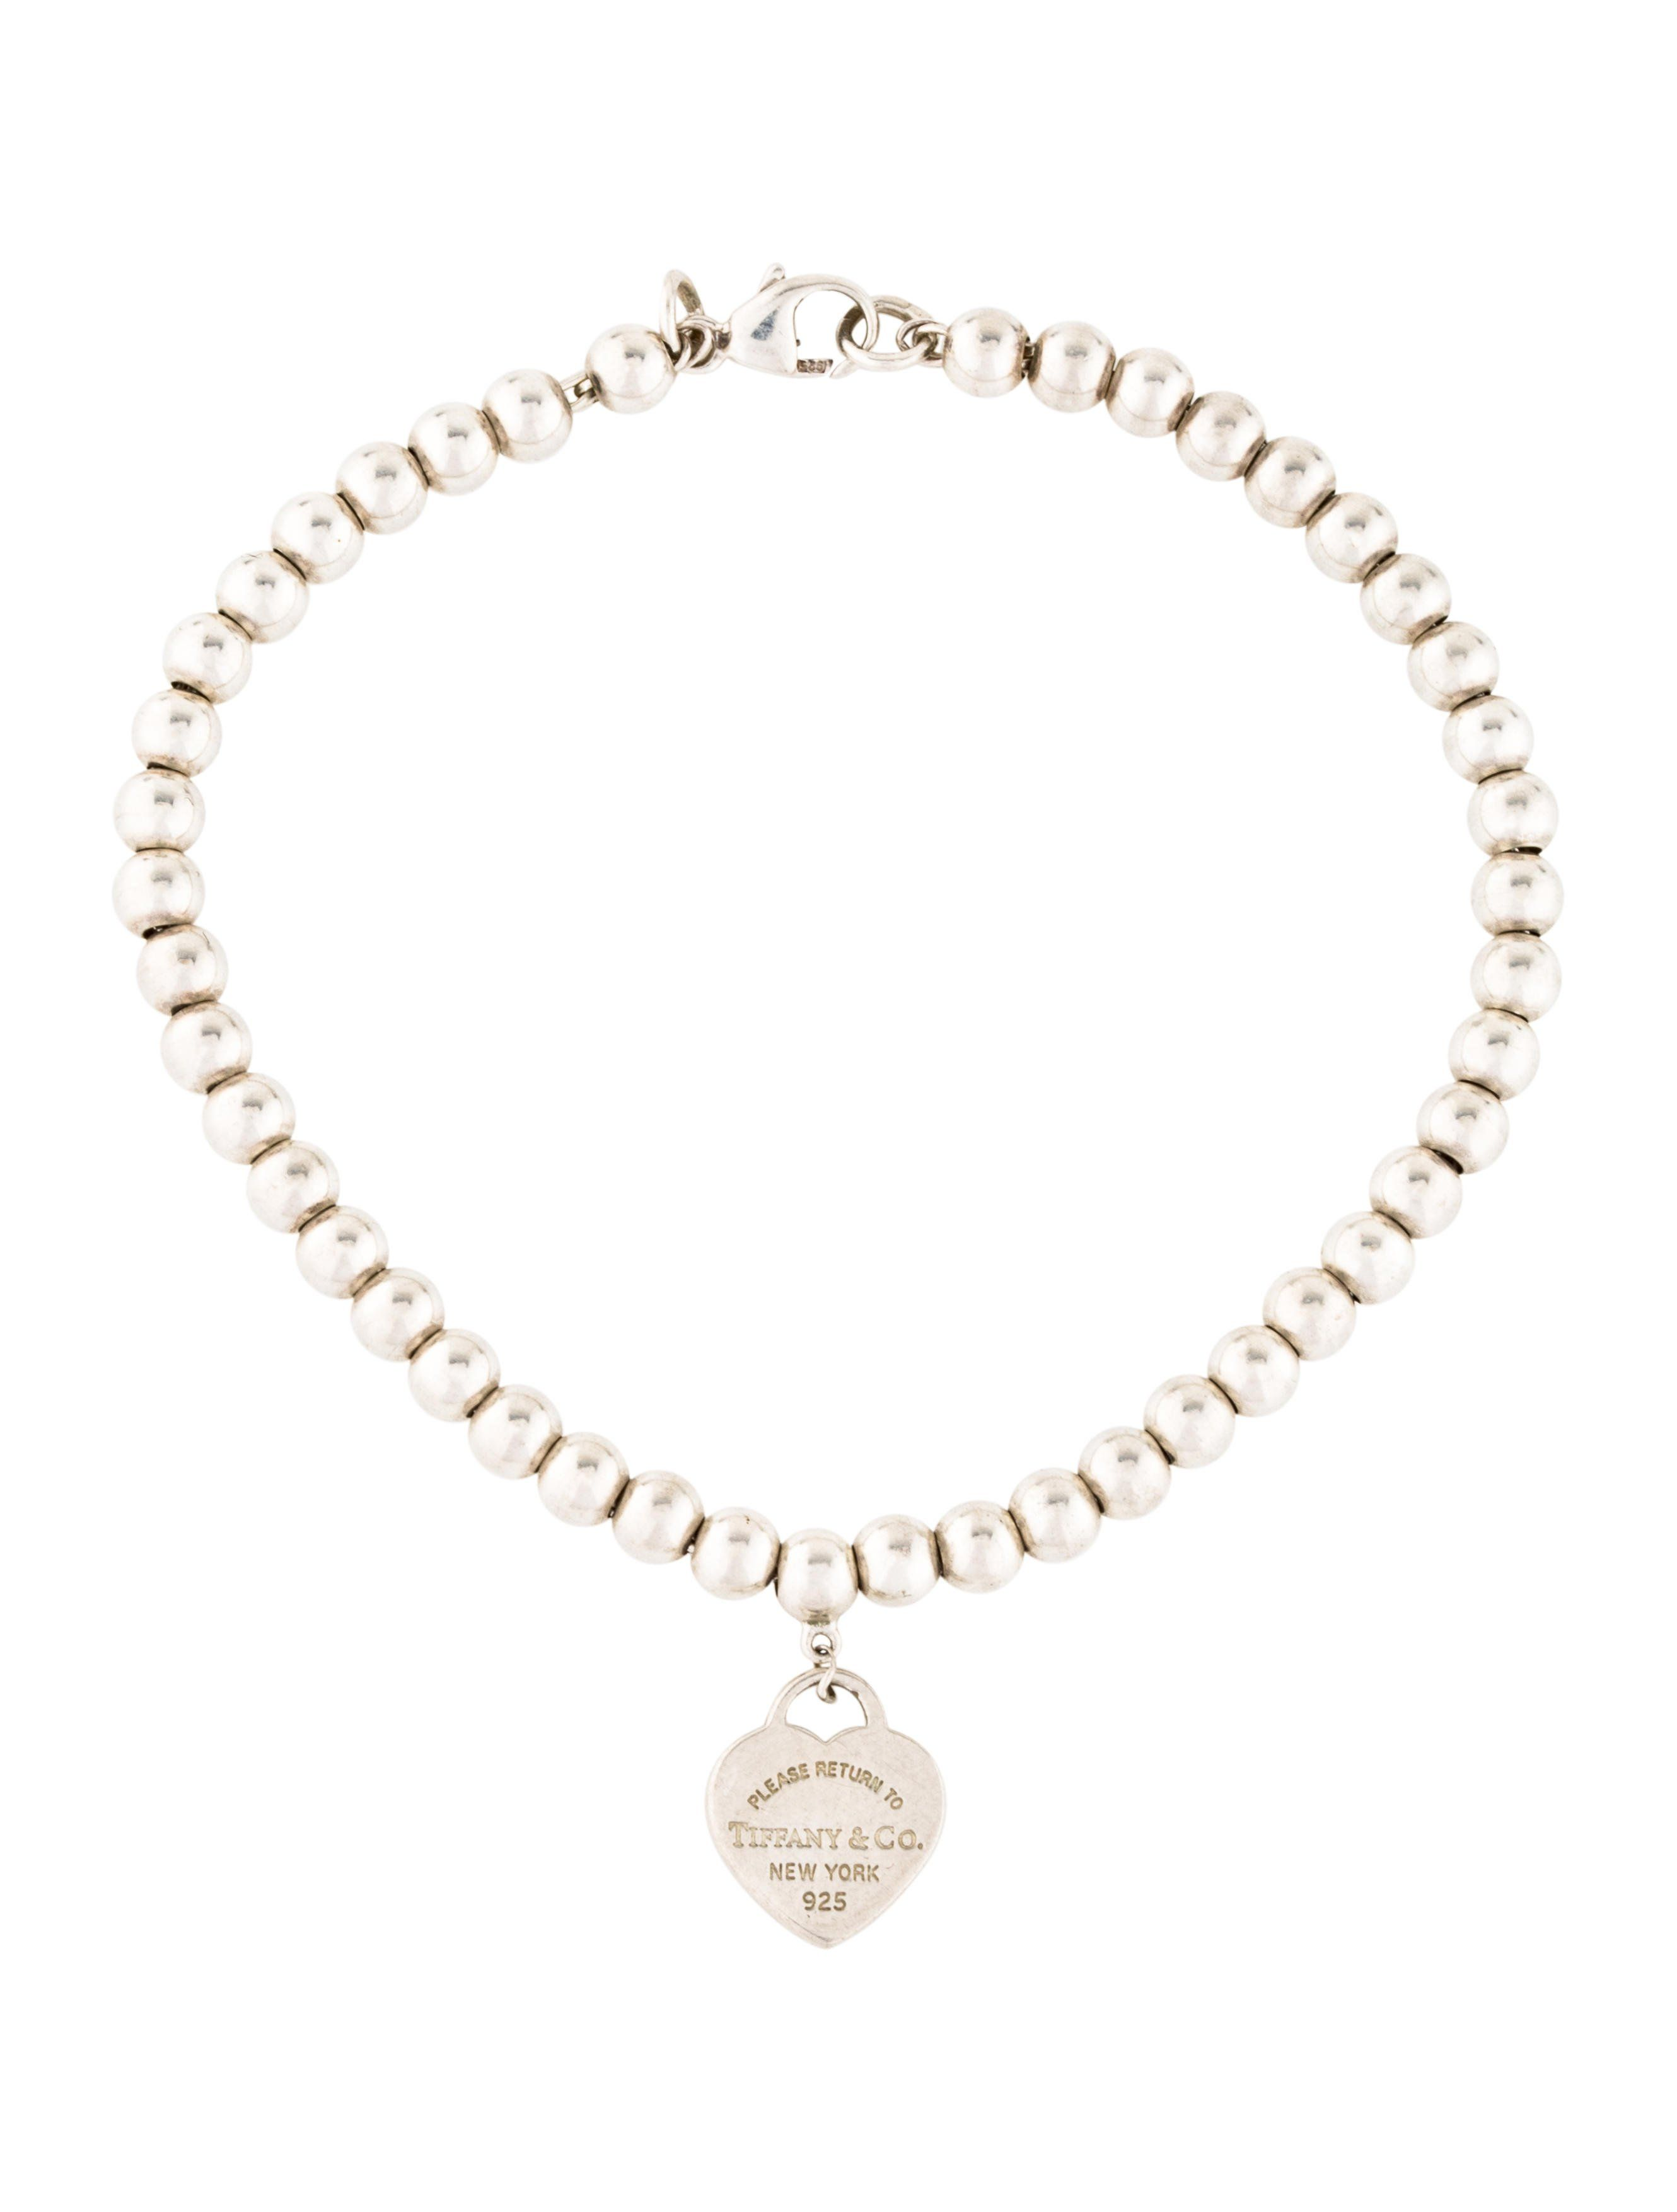 7e14e6c81 Sterling silver Tiffany & Co. Return To Tiffany bead bracelet featuring a  fixed designer engraved heart charm and lobster clasp closure.